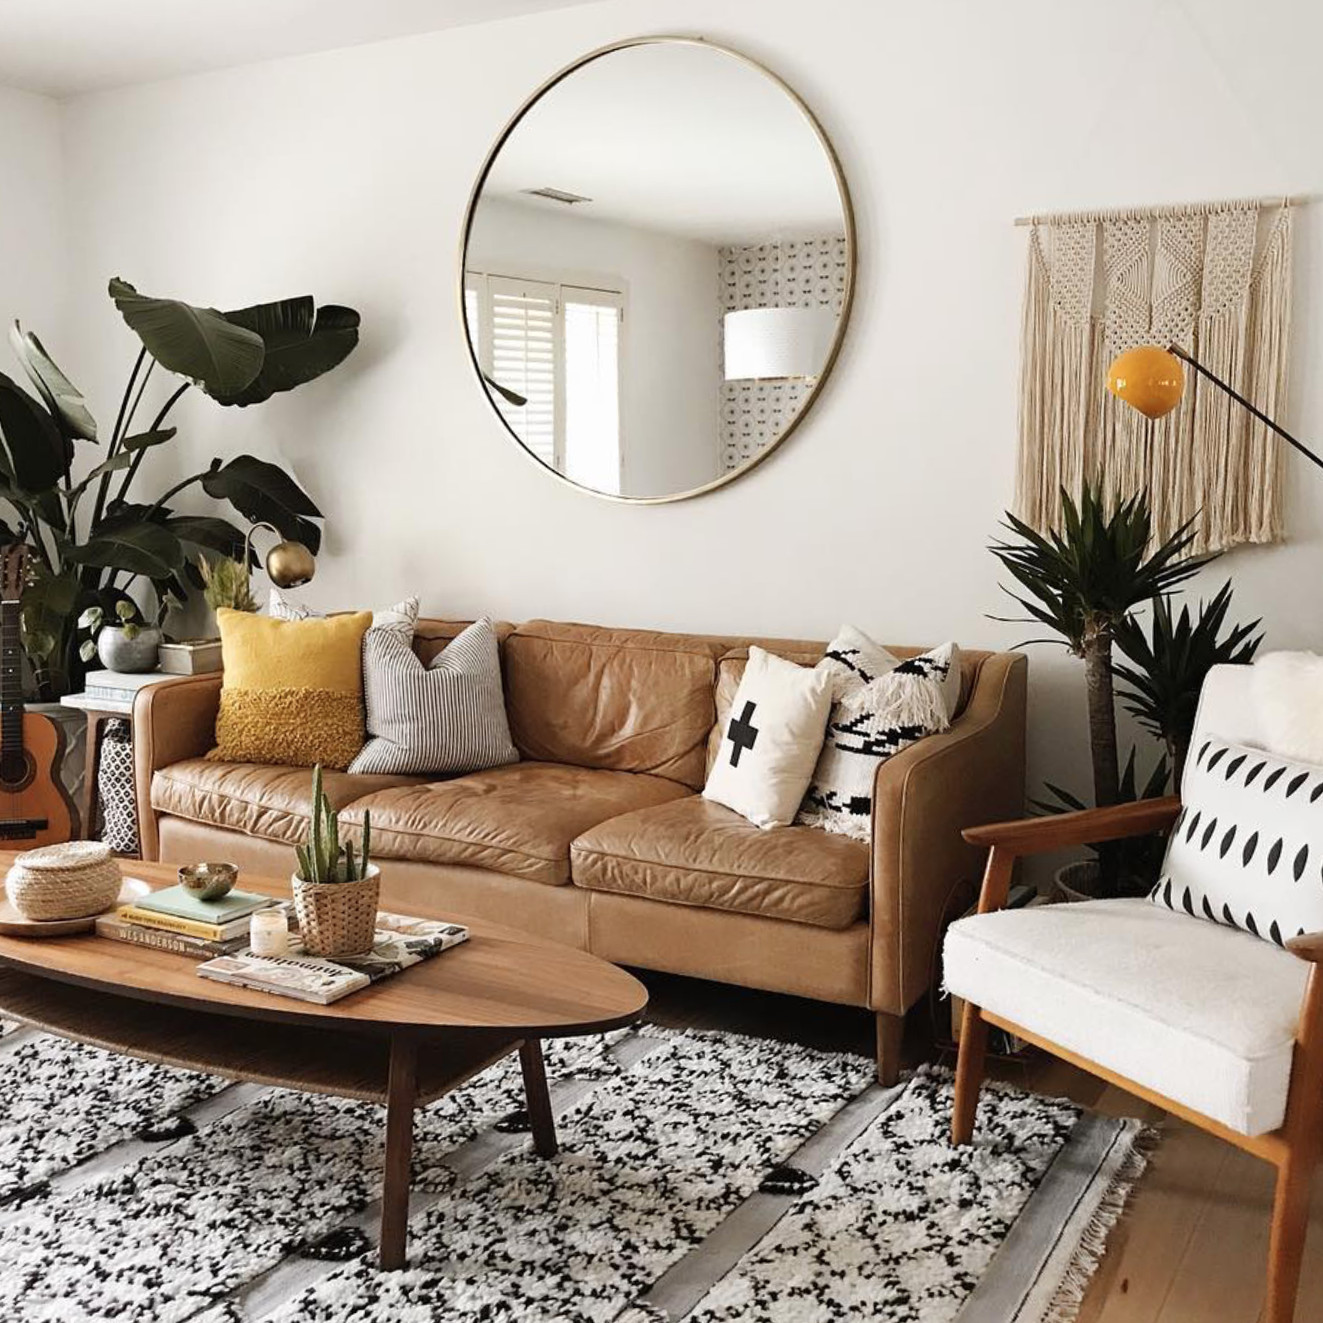 Apartment Living Room Decorating 7 Apartment Decorating and Small Living Room Ideas